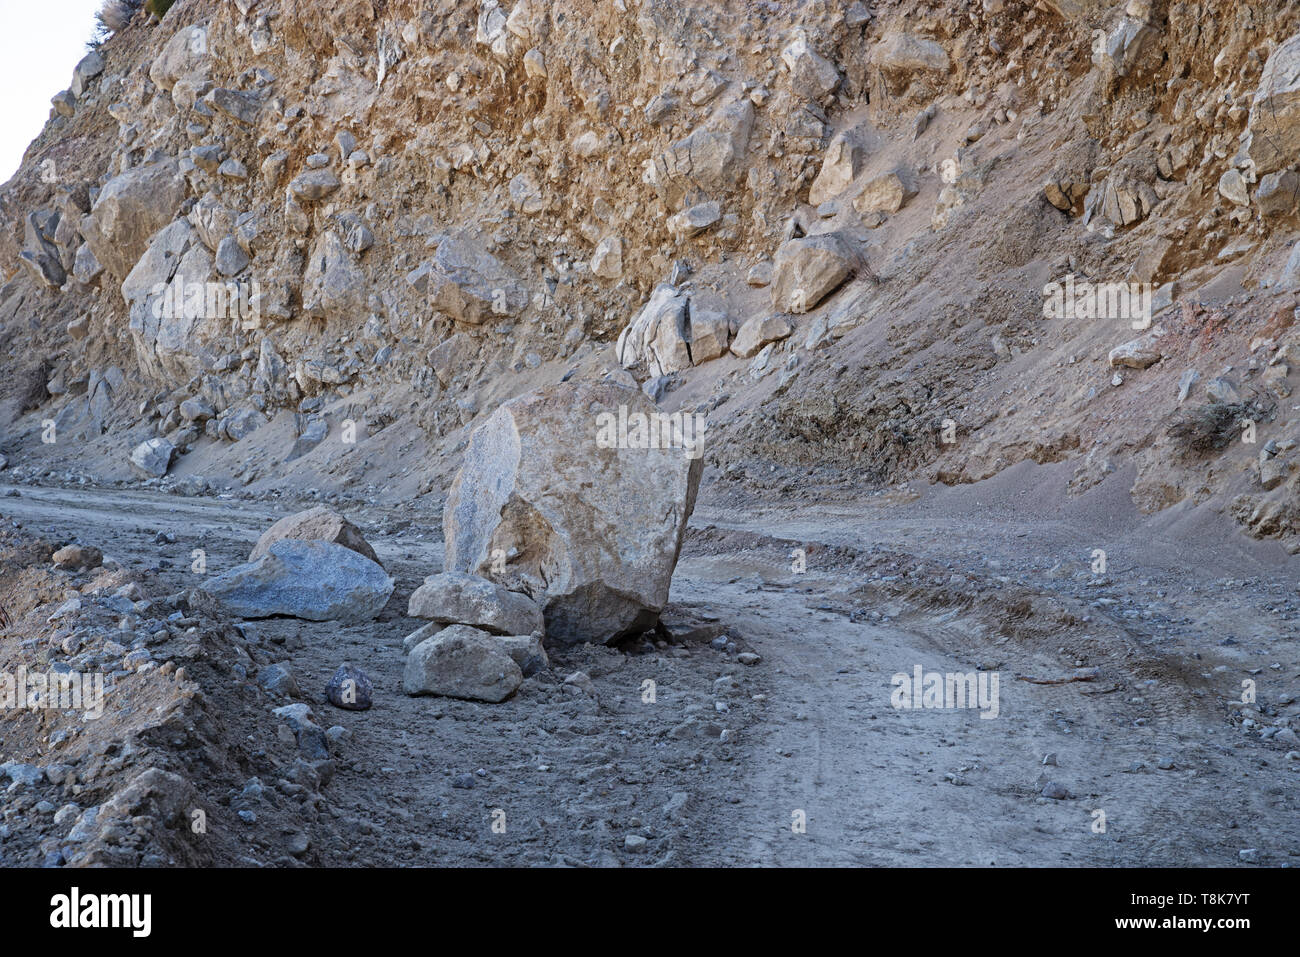 boulder that fell onto a dirt road along a very loose roadcut - Stock Image